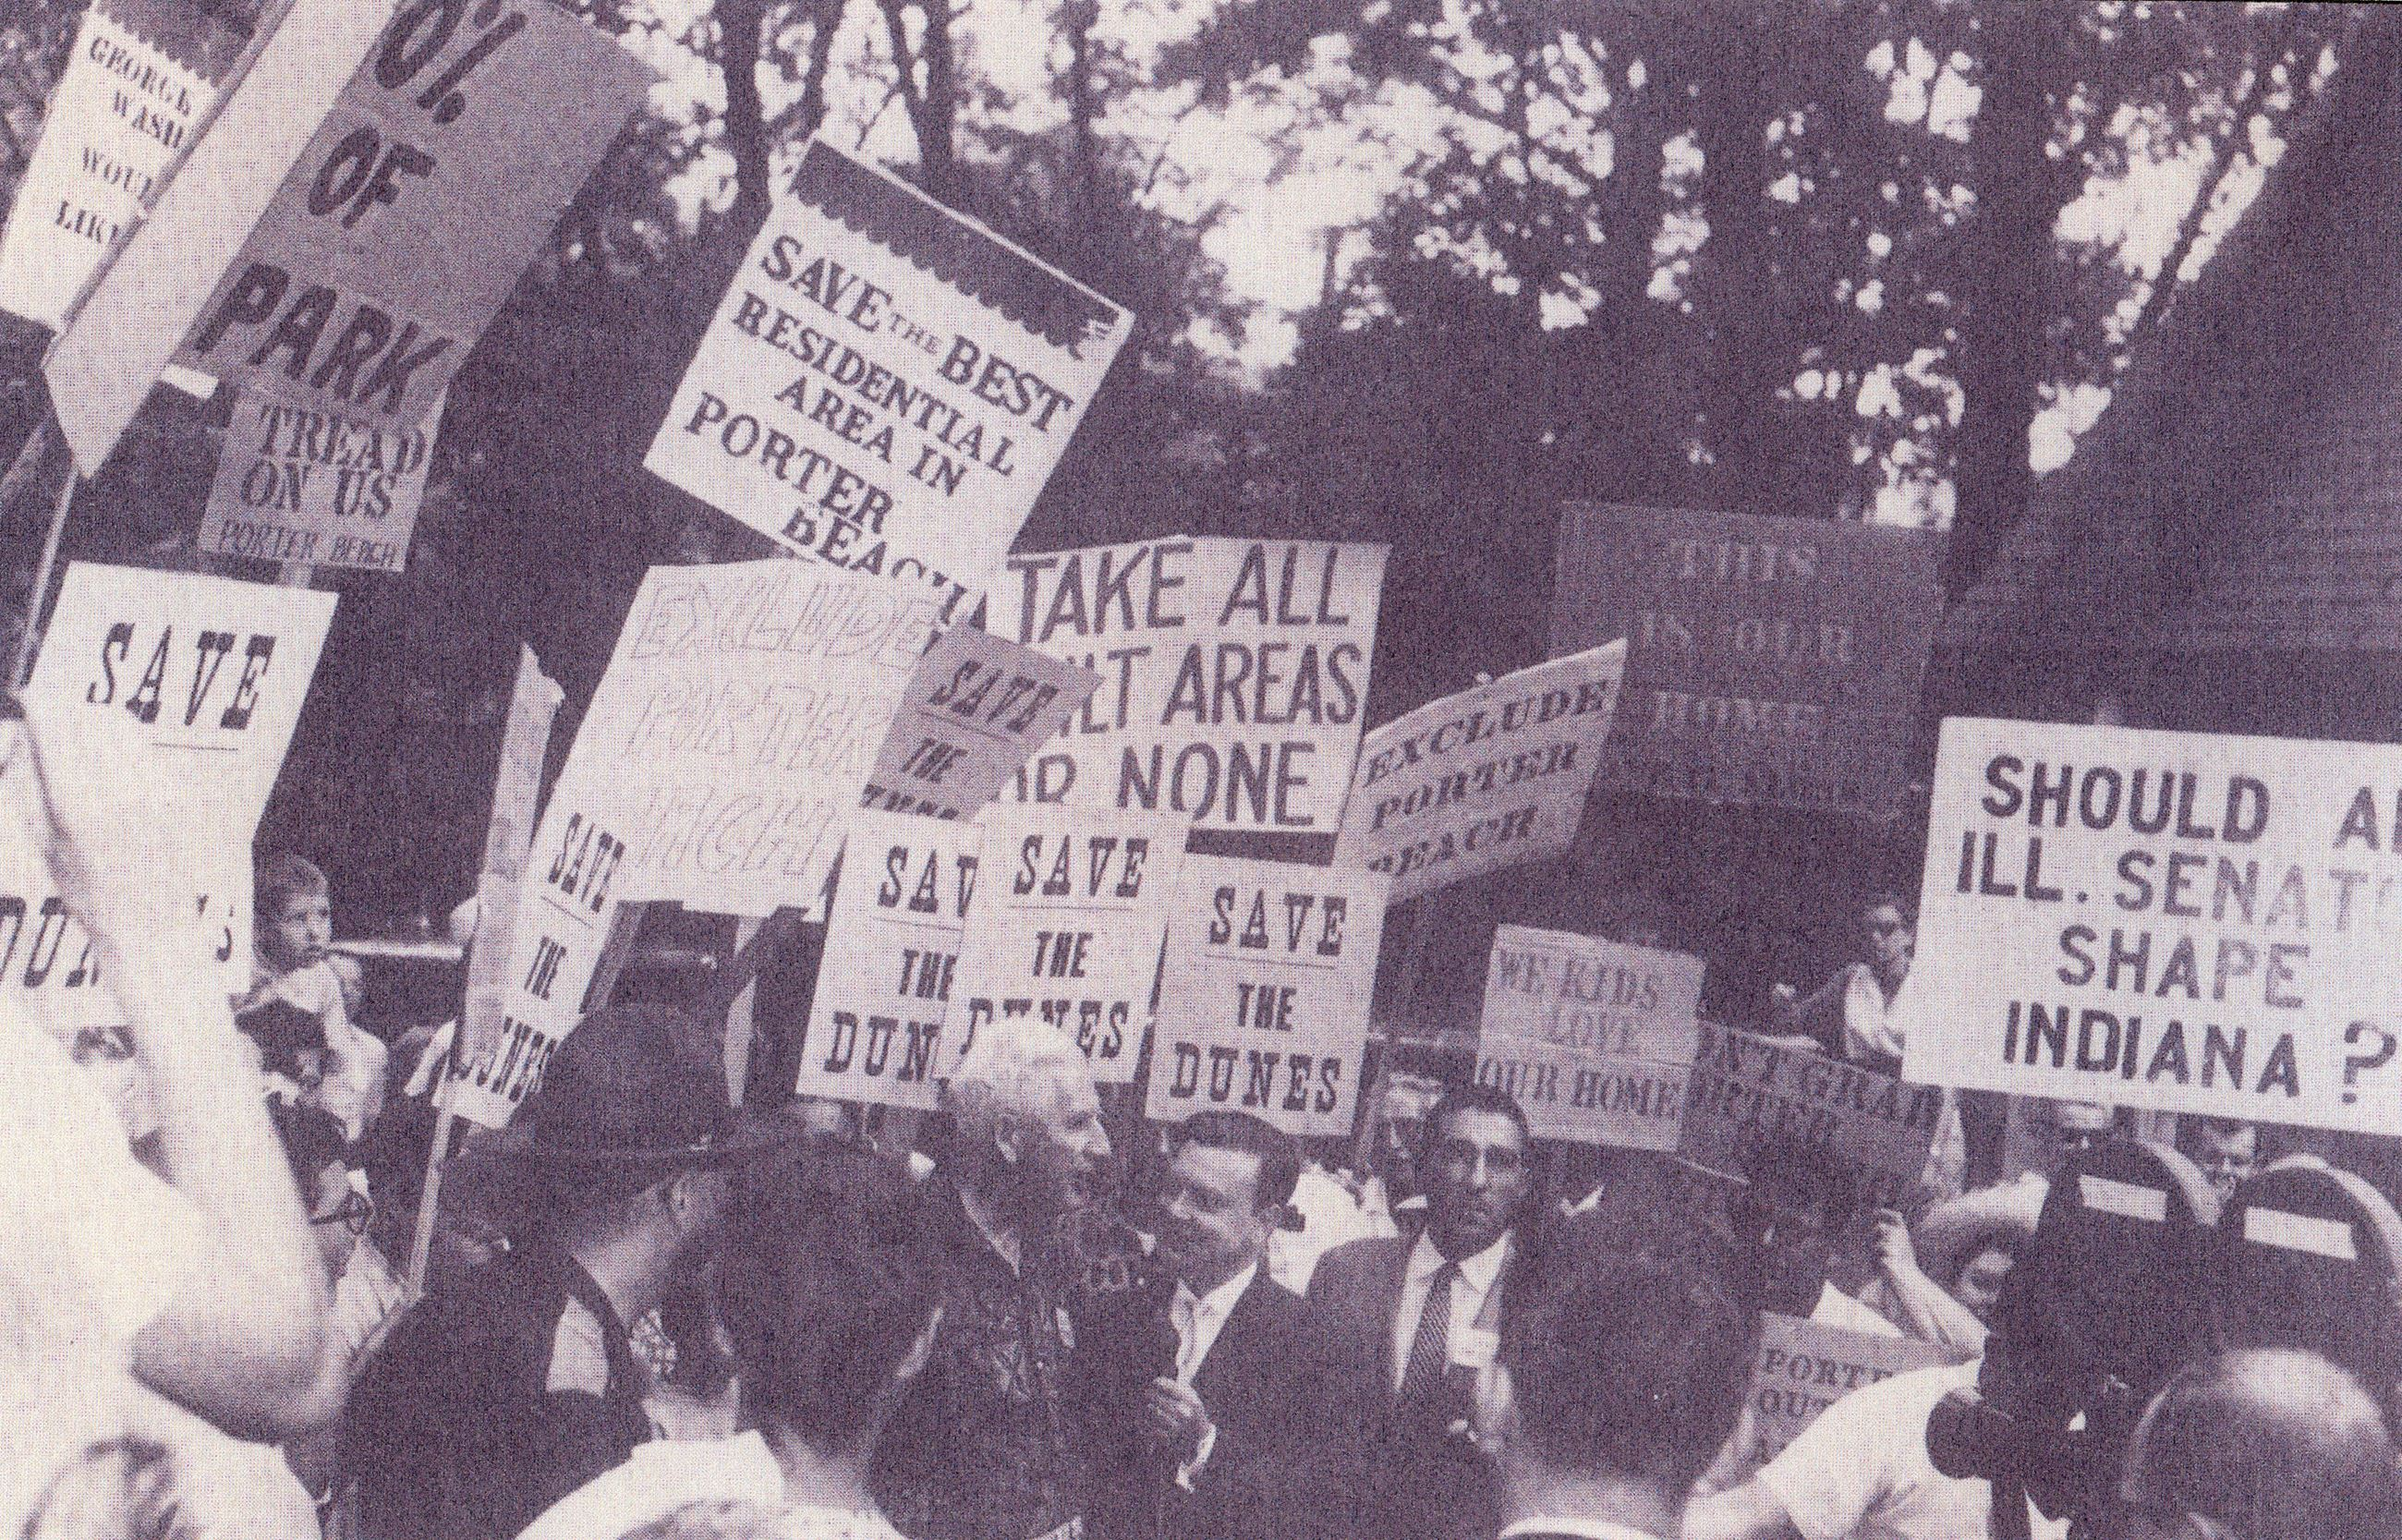 Proponents and opponents of a dunes park demonstrate in 1961.